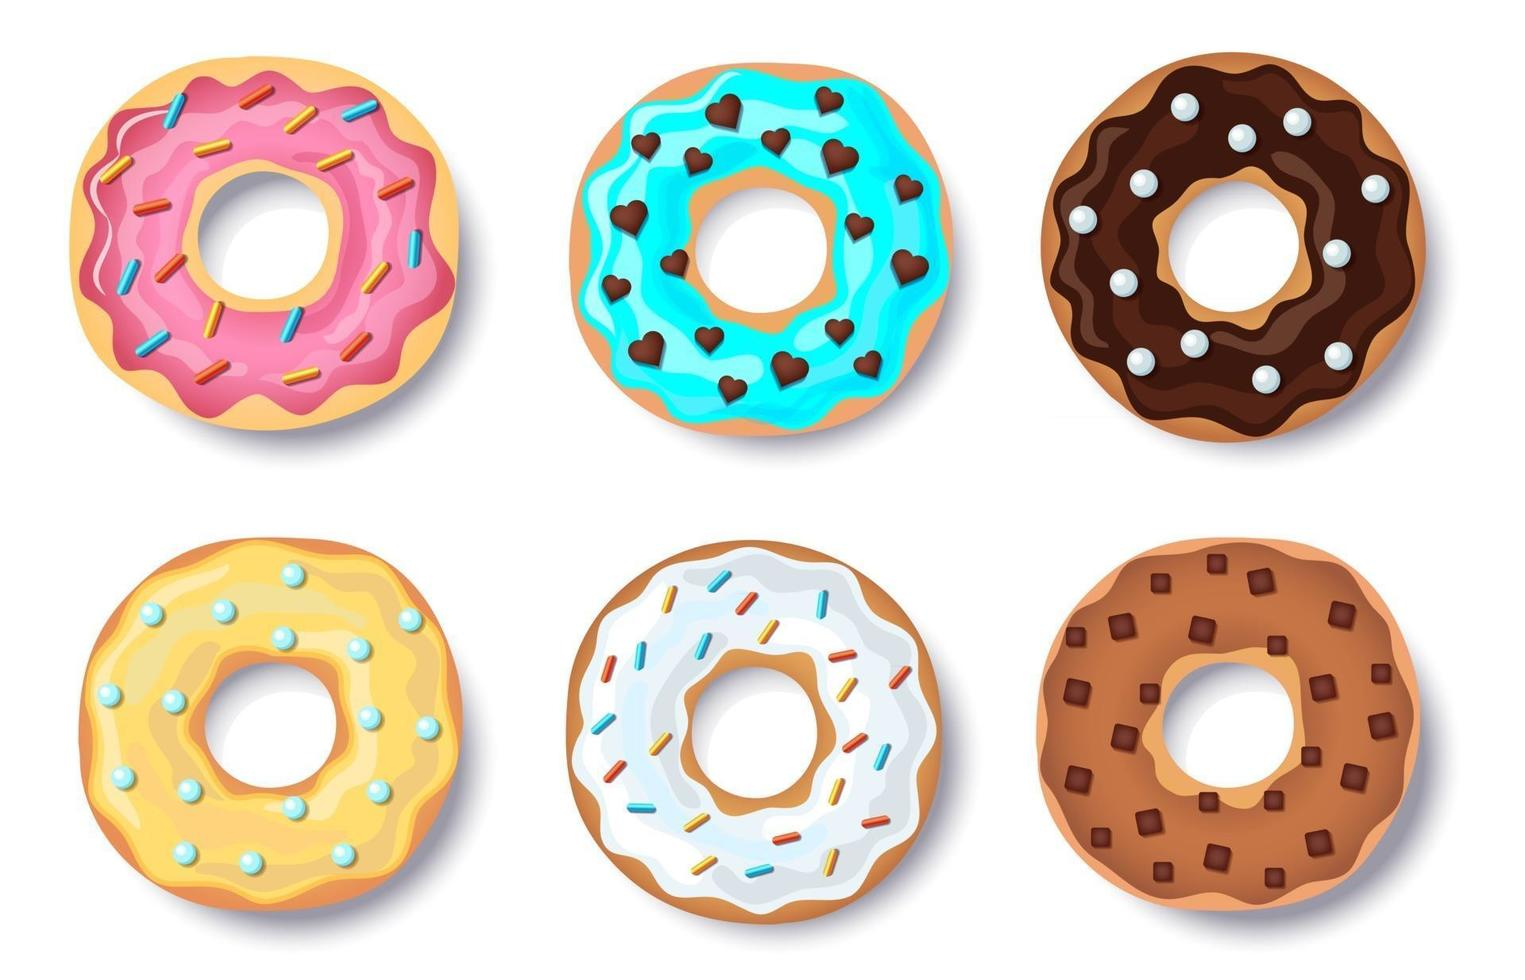 Donut vector set, collection of colorful doughnut cakes, with caramel and chocolate topping and colorful candy, isolated on white background with shadow